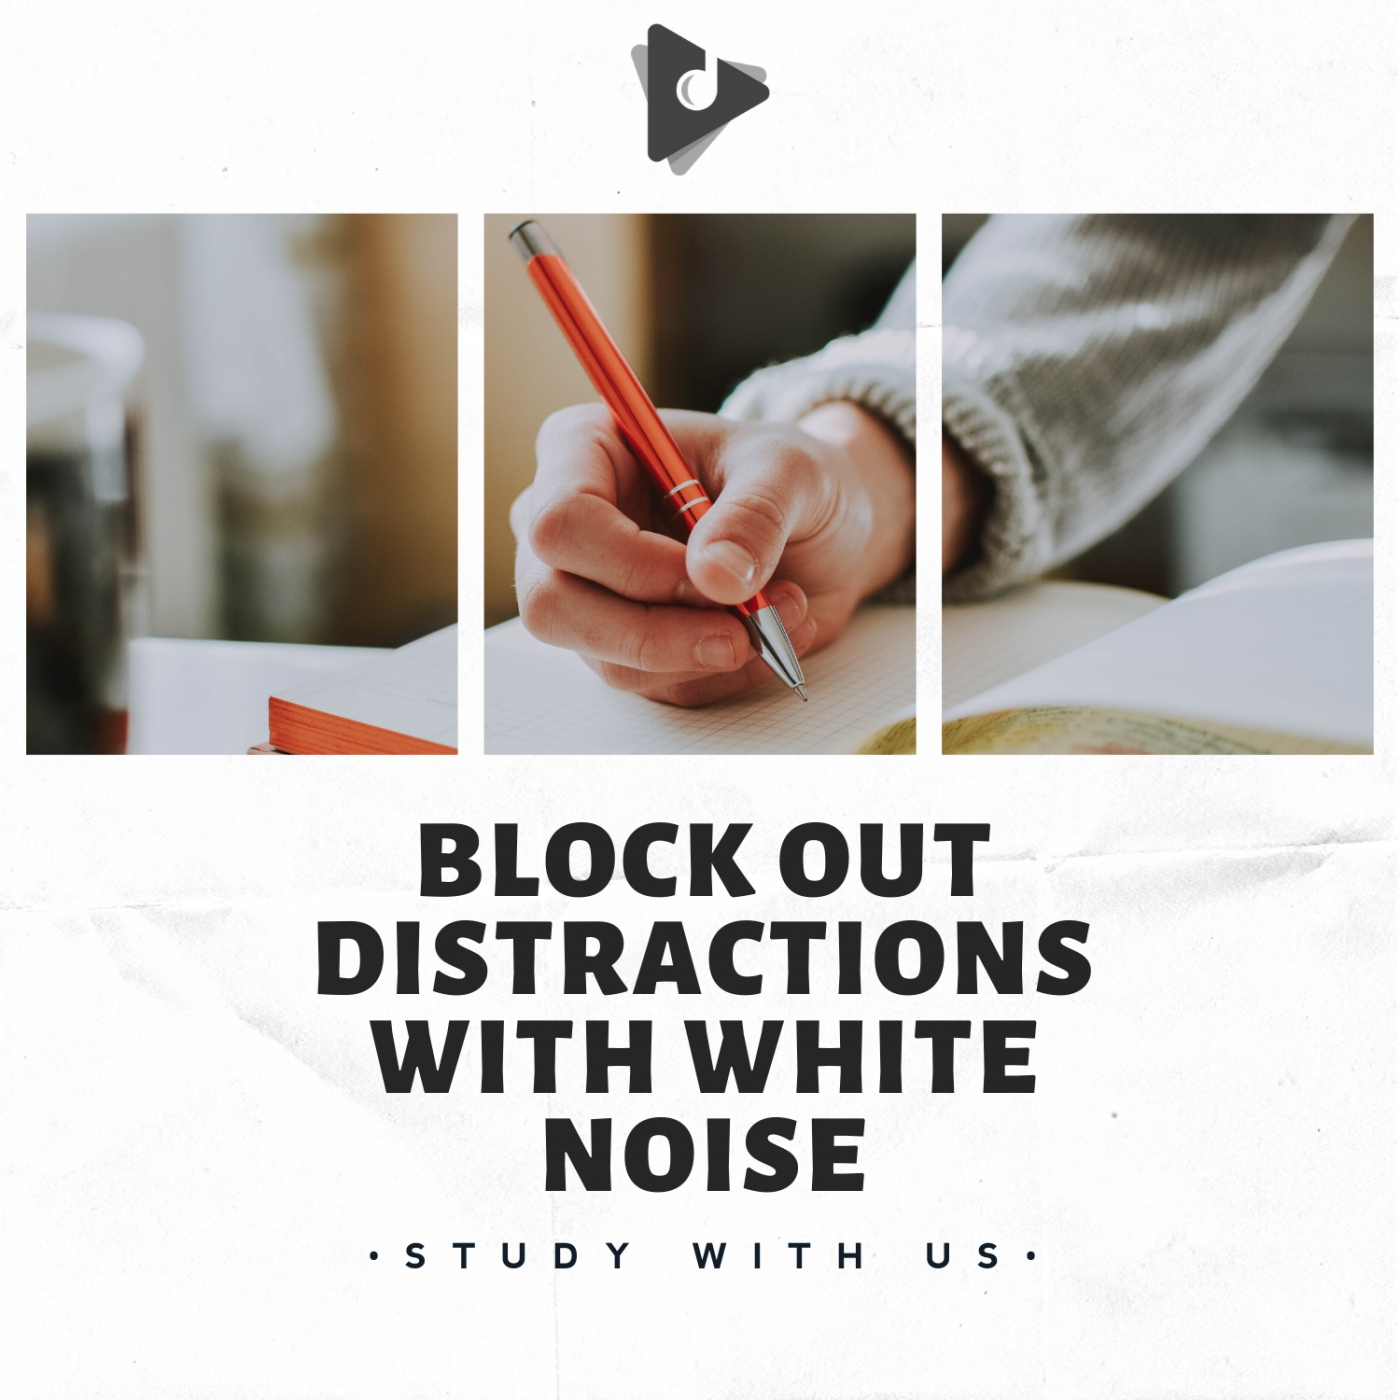 Block Out Distractions With White Noise